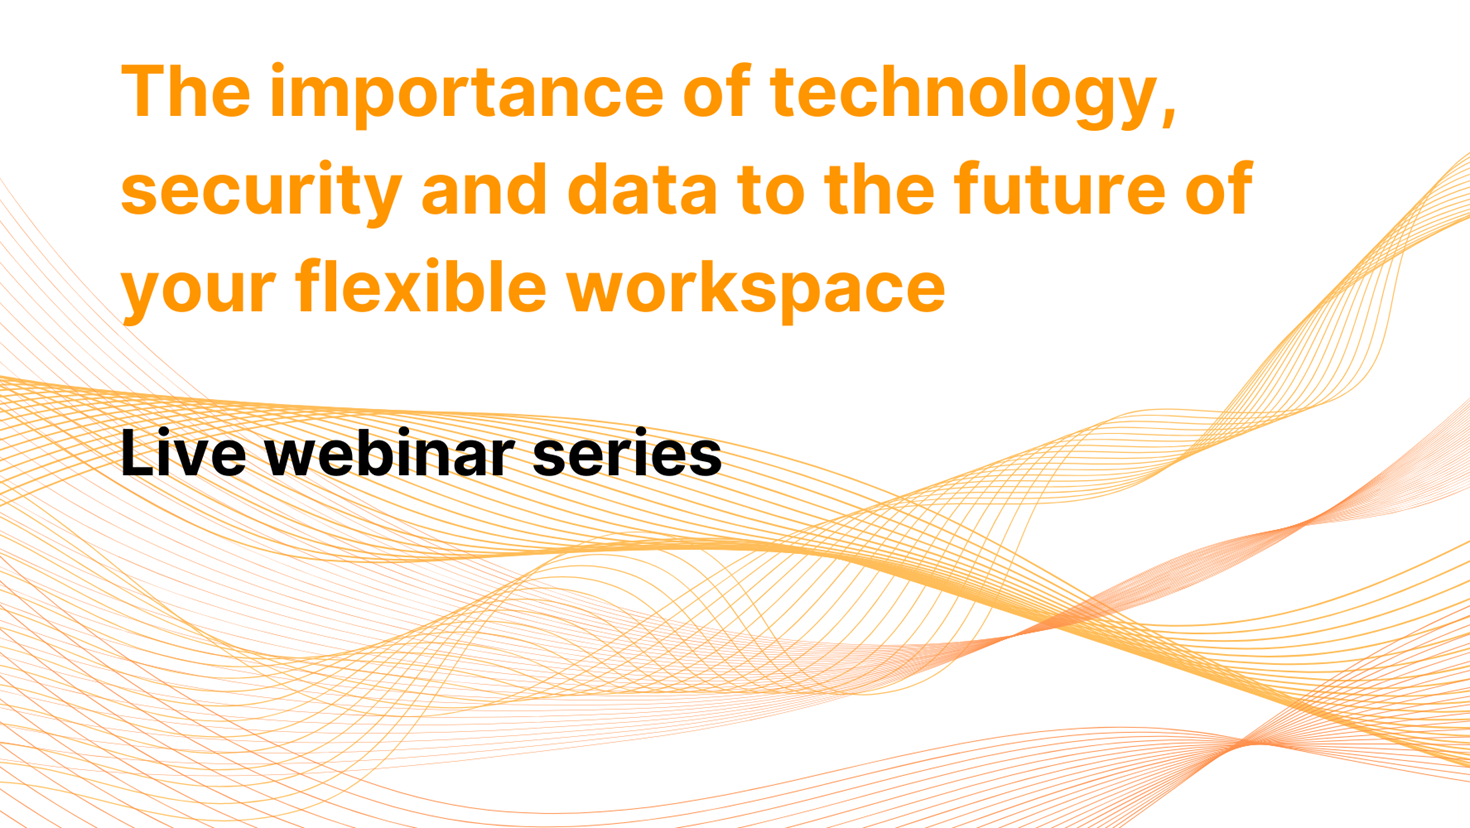 Tune in for our four-part Live Webinar Series!